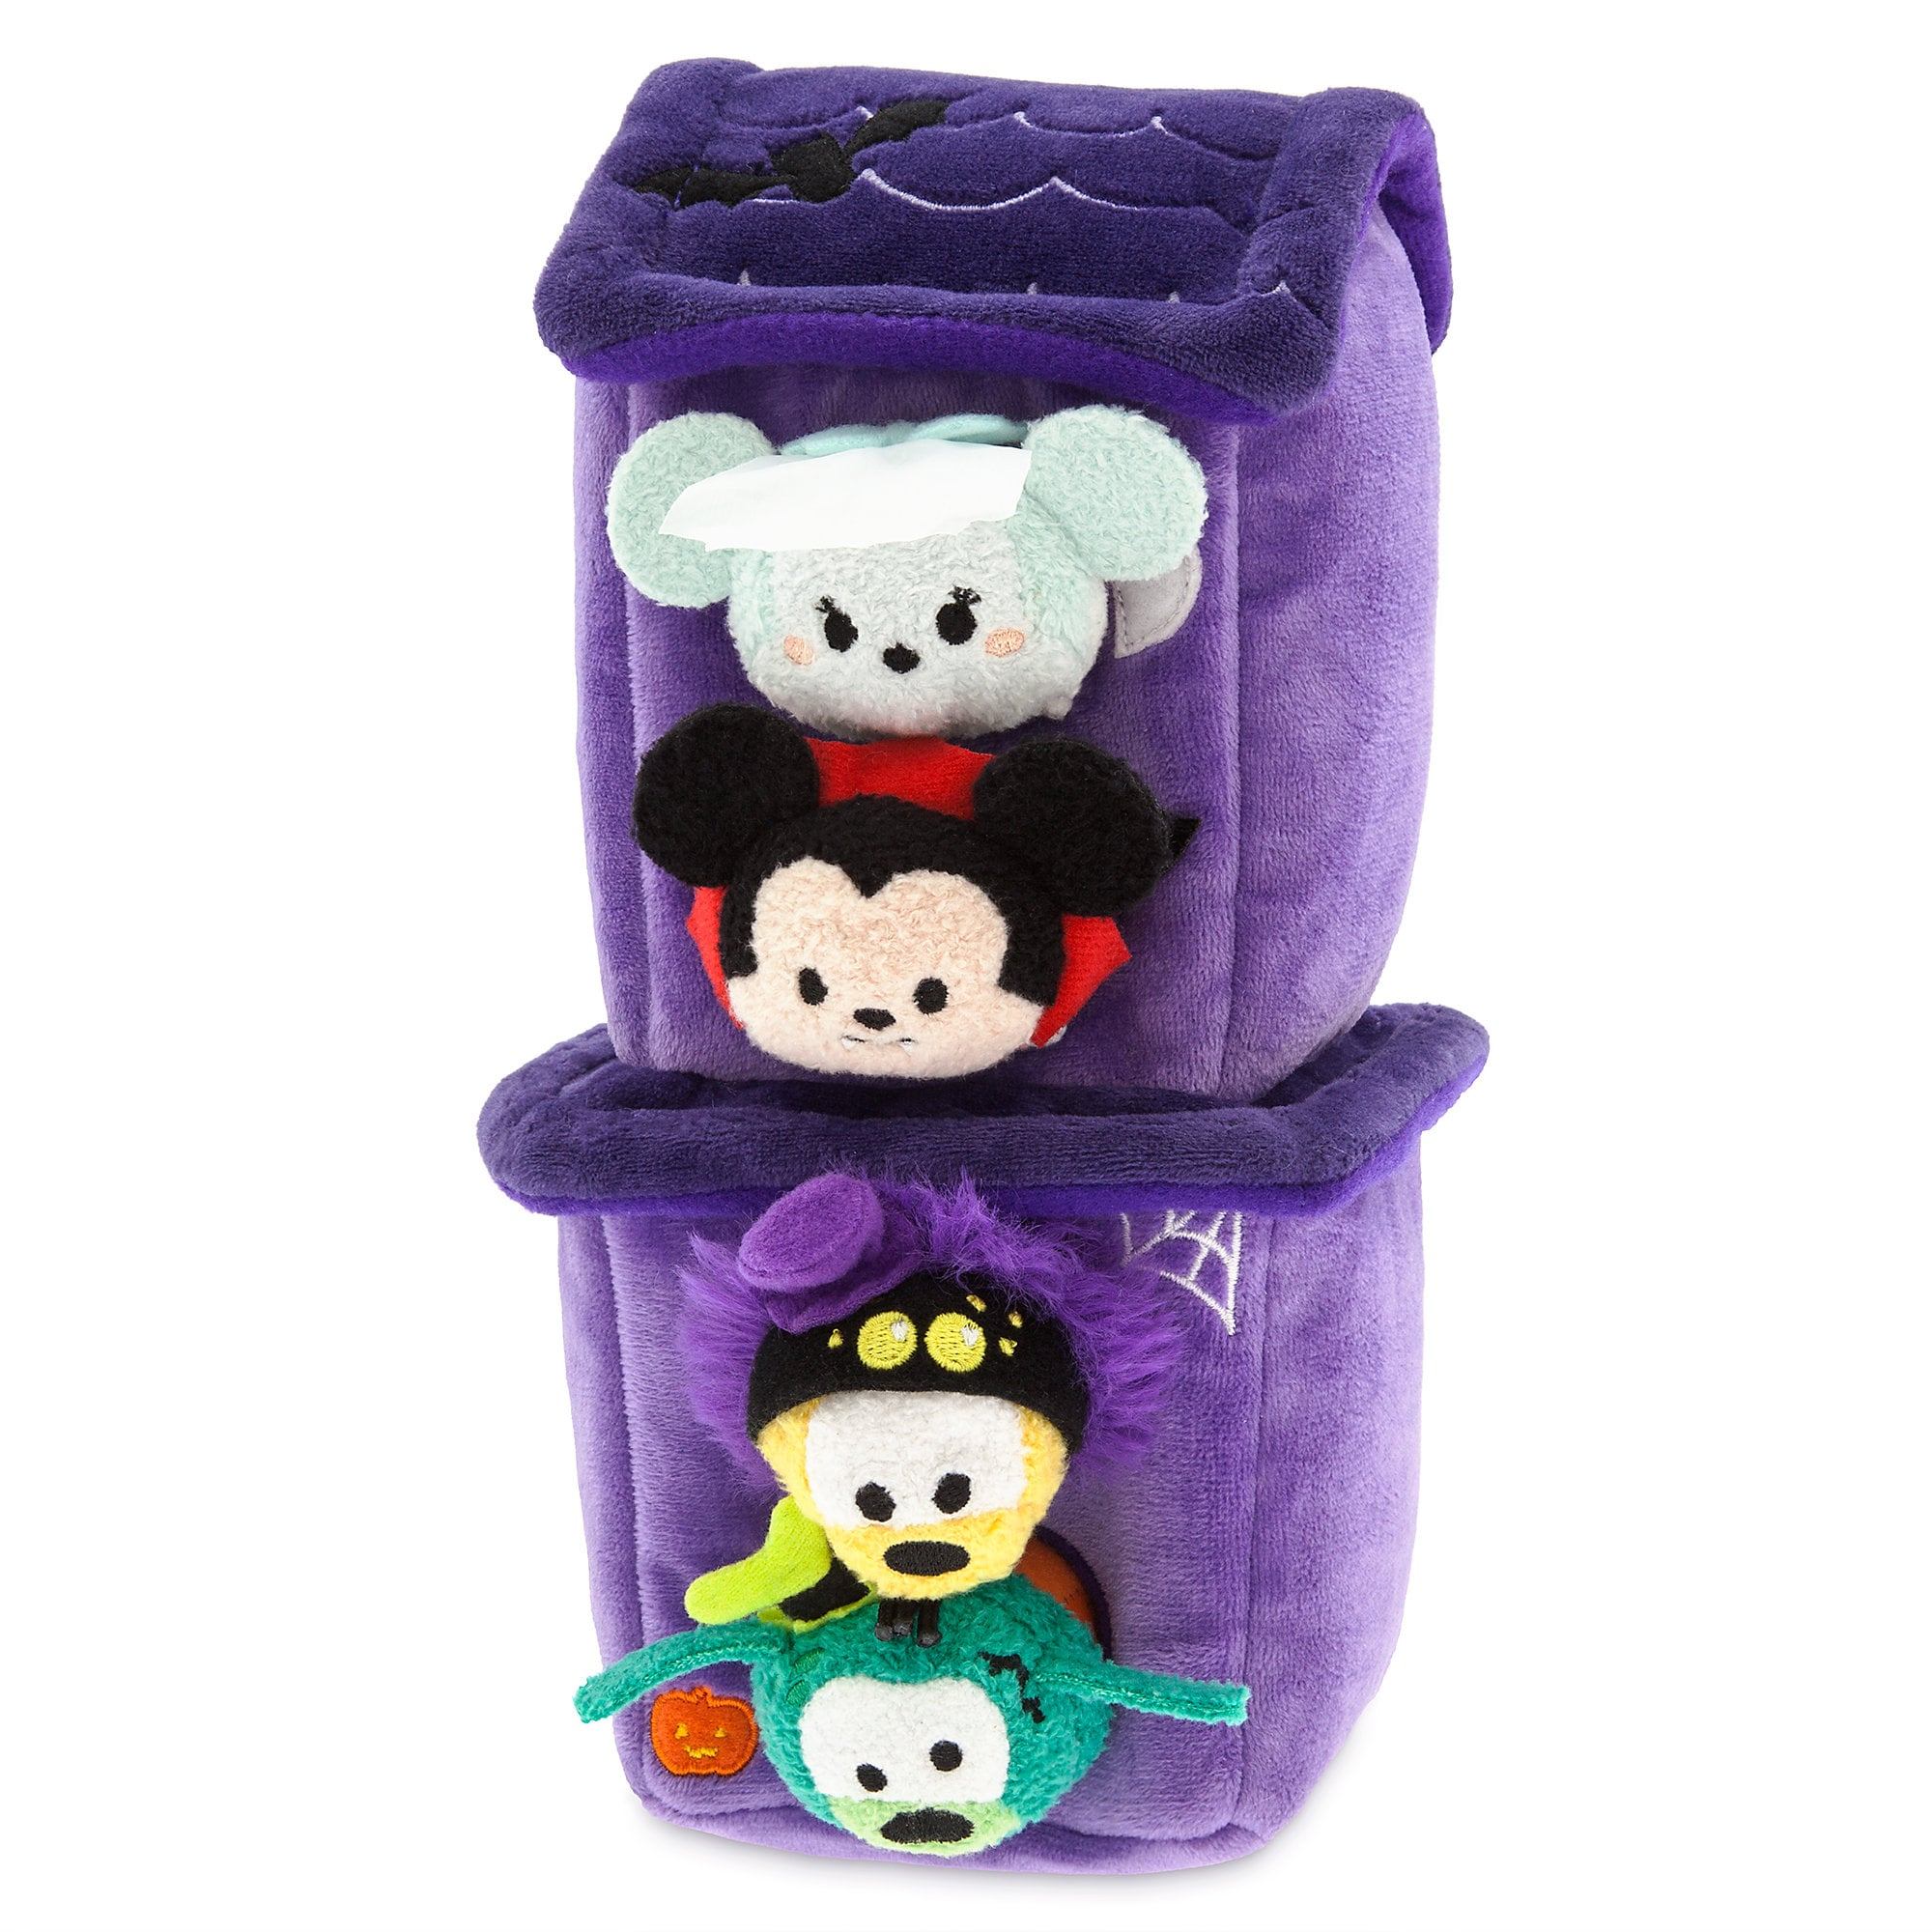 Mickey Mouse and Friends ''Tsum Tsum'' Haunted House Plush Set Plus 4 Micros - 2 1/2''